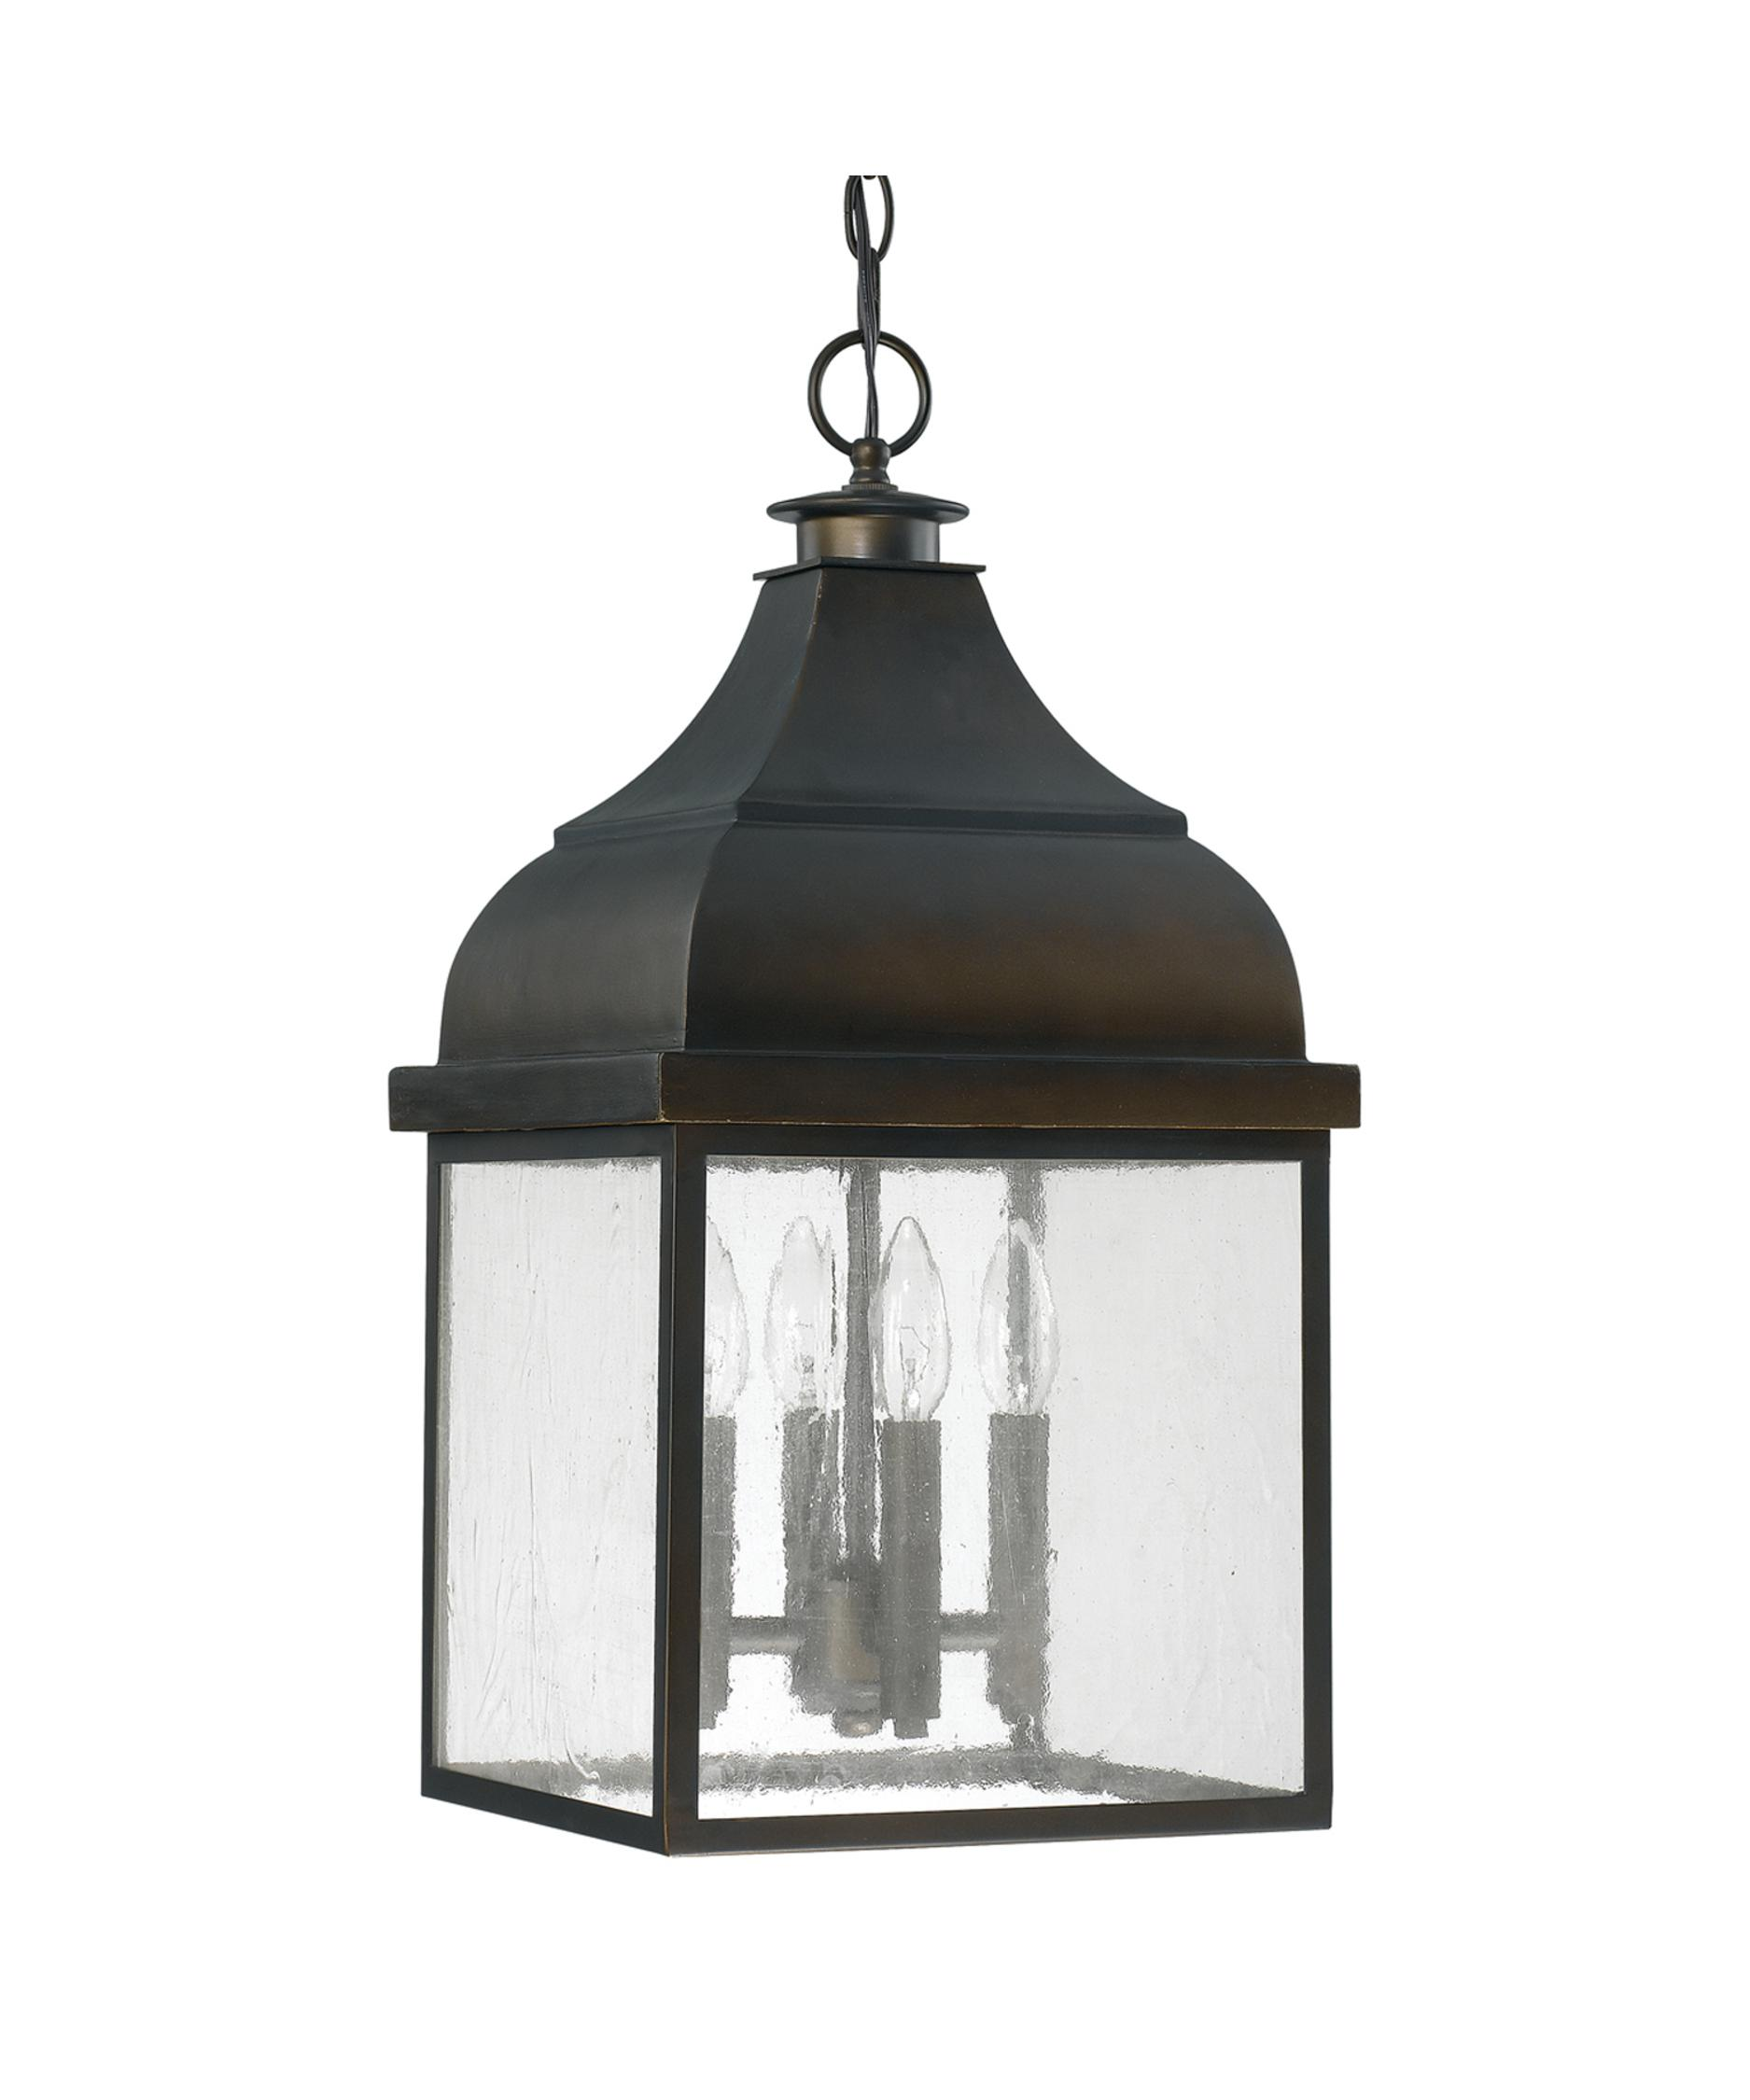 Outdoor hanging lamp - Shown In Old Bronze Finish And Clear Antique Glass